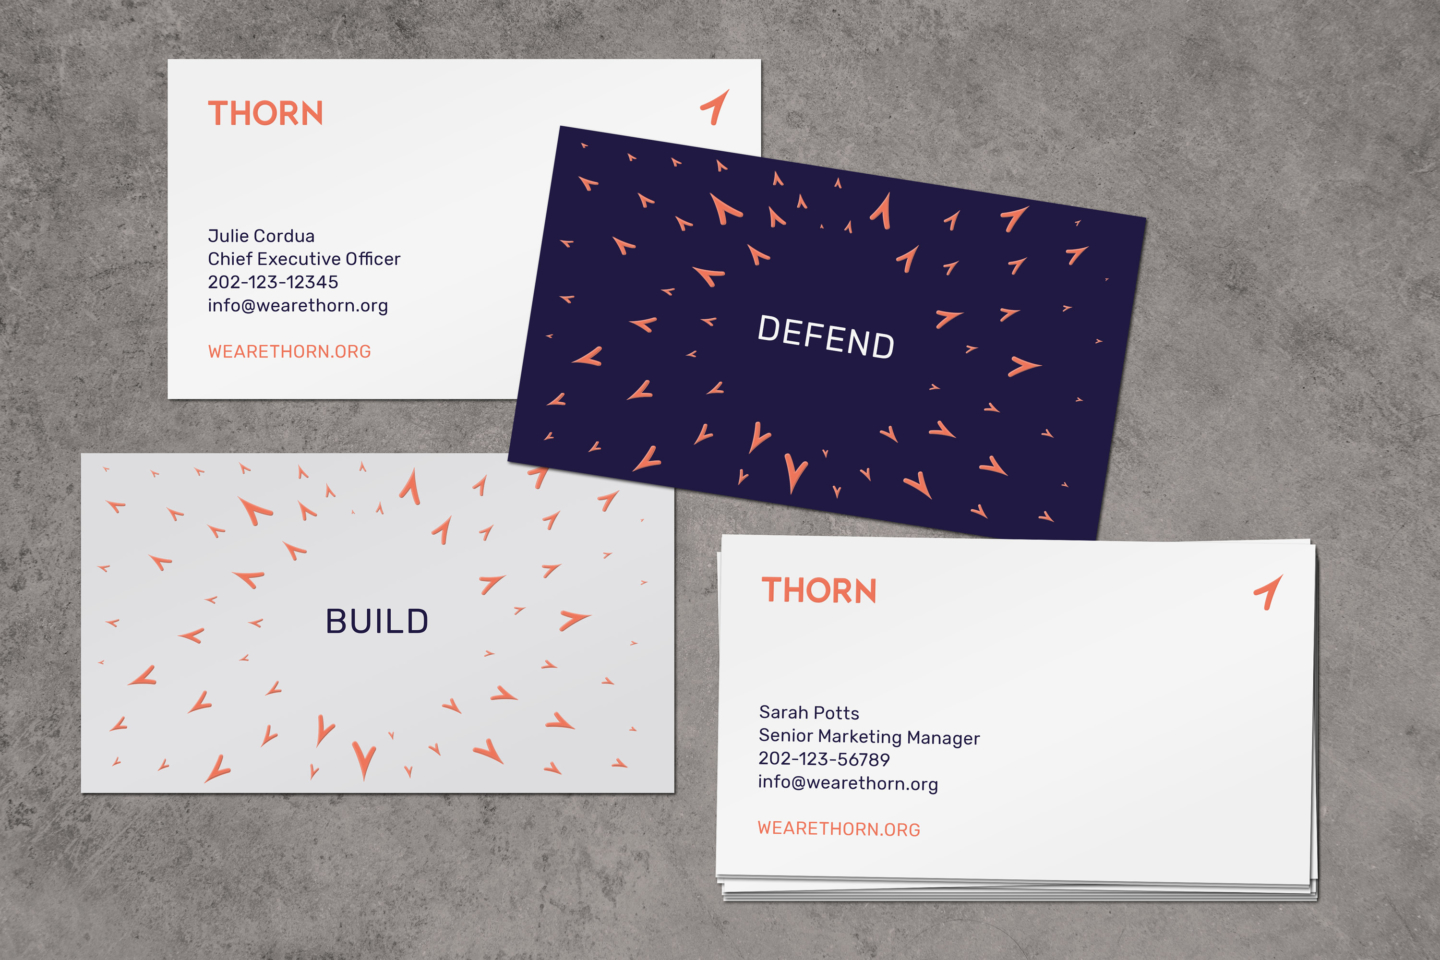 THORN_07_BusinessCards-1440x960.jpg